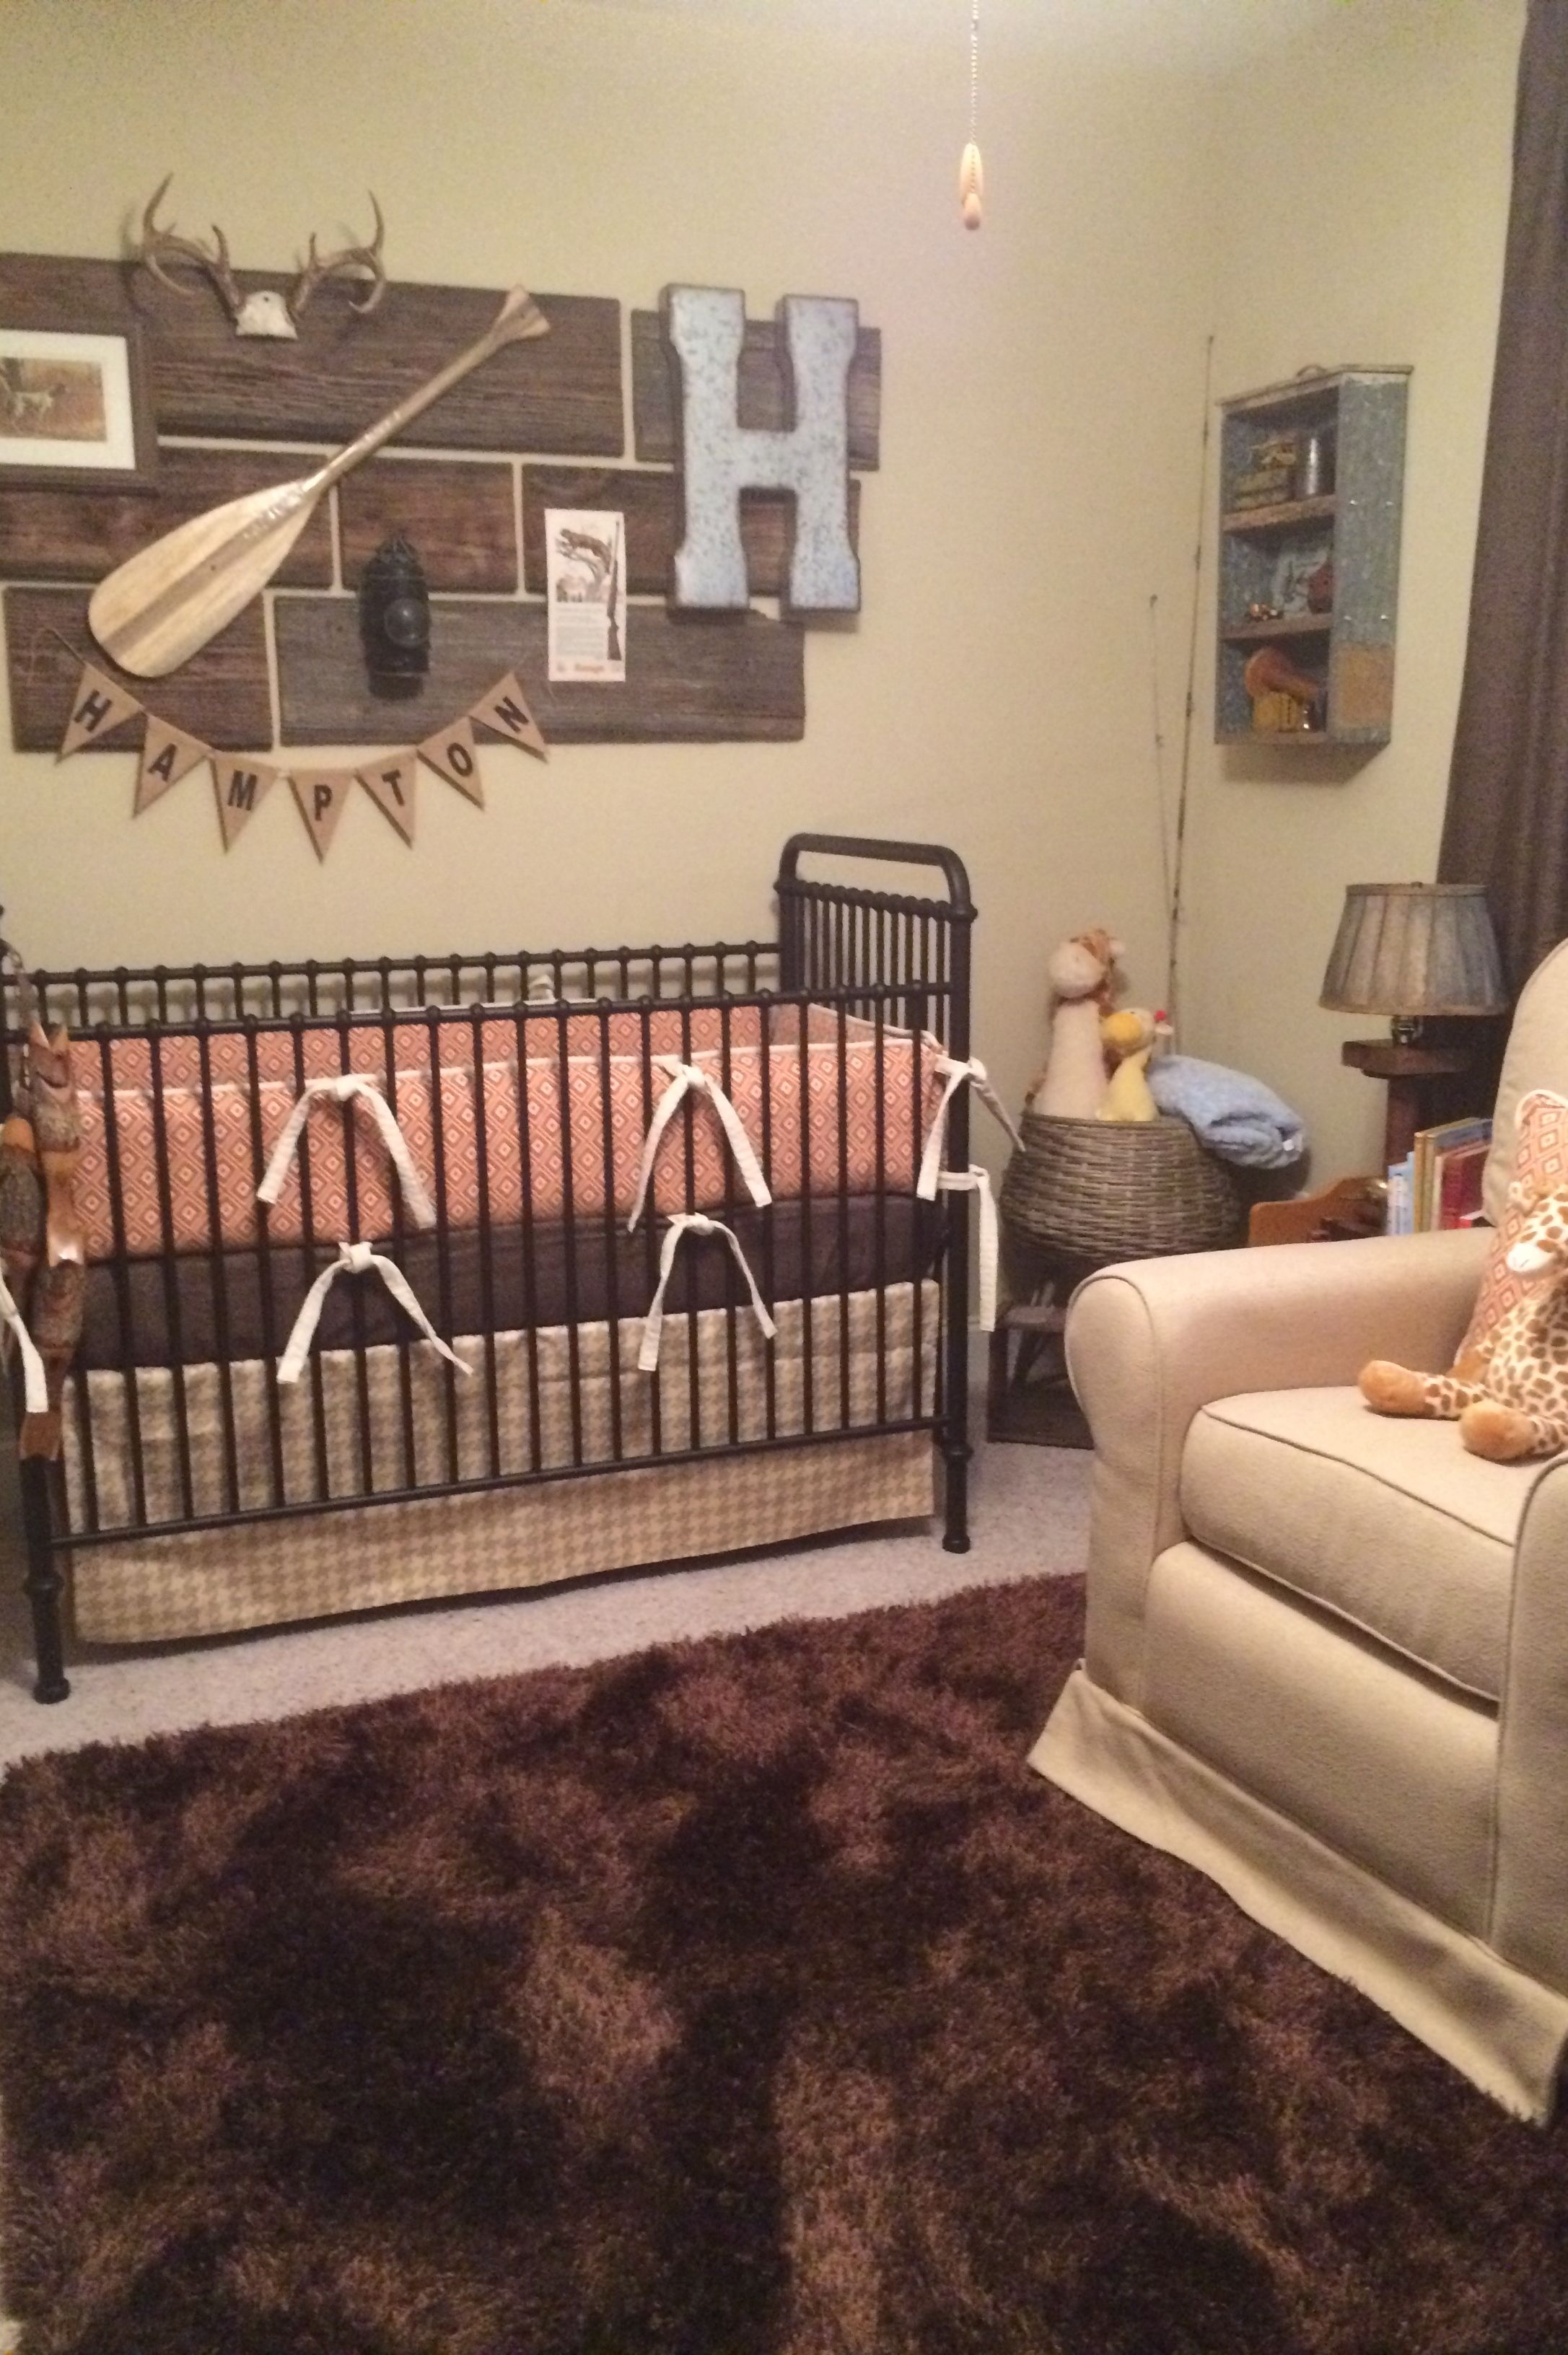 Crib Bedding Baby Boy Rooms: Rustic Nursery Decor With Orange Diamond Custom Crib